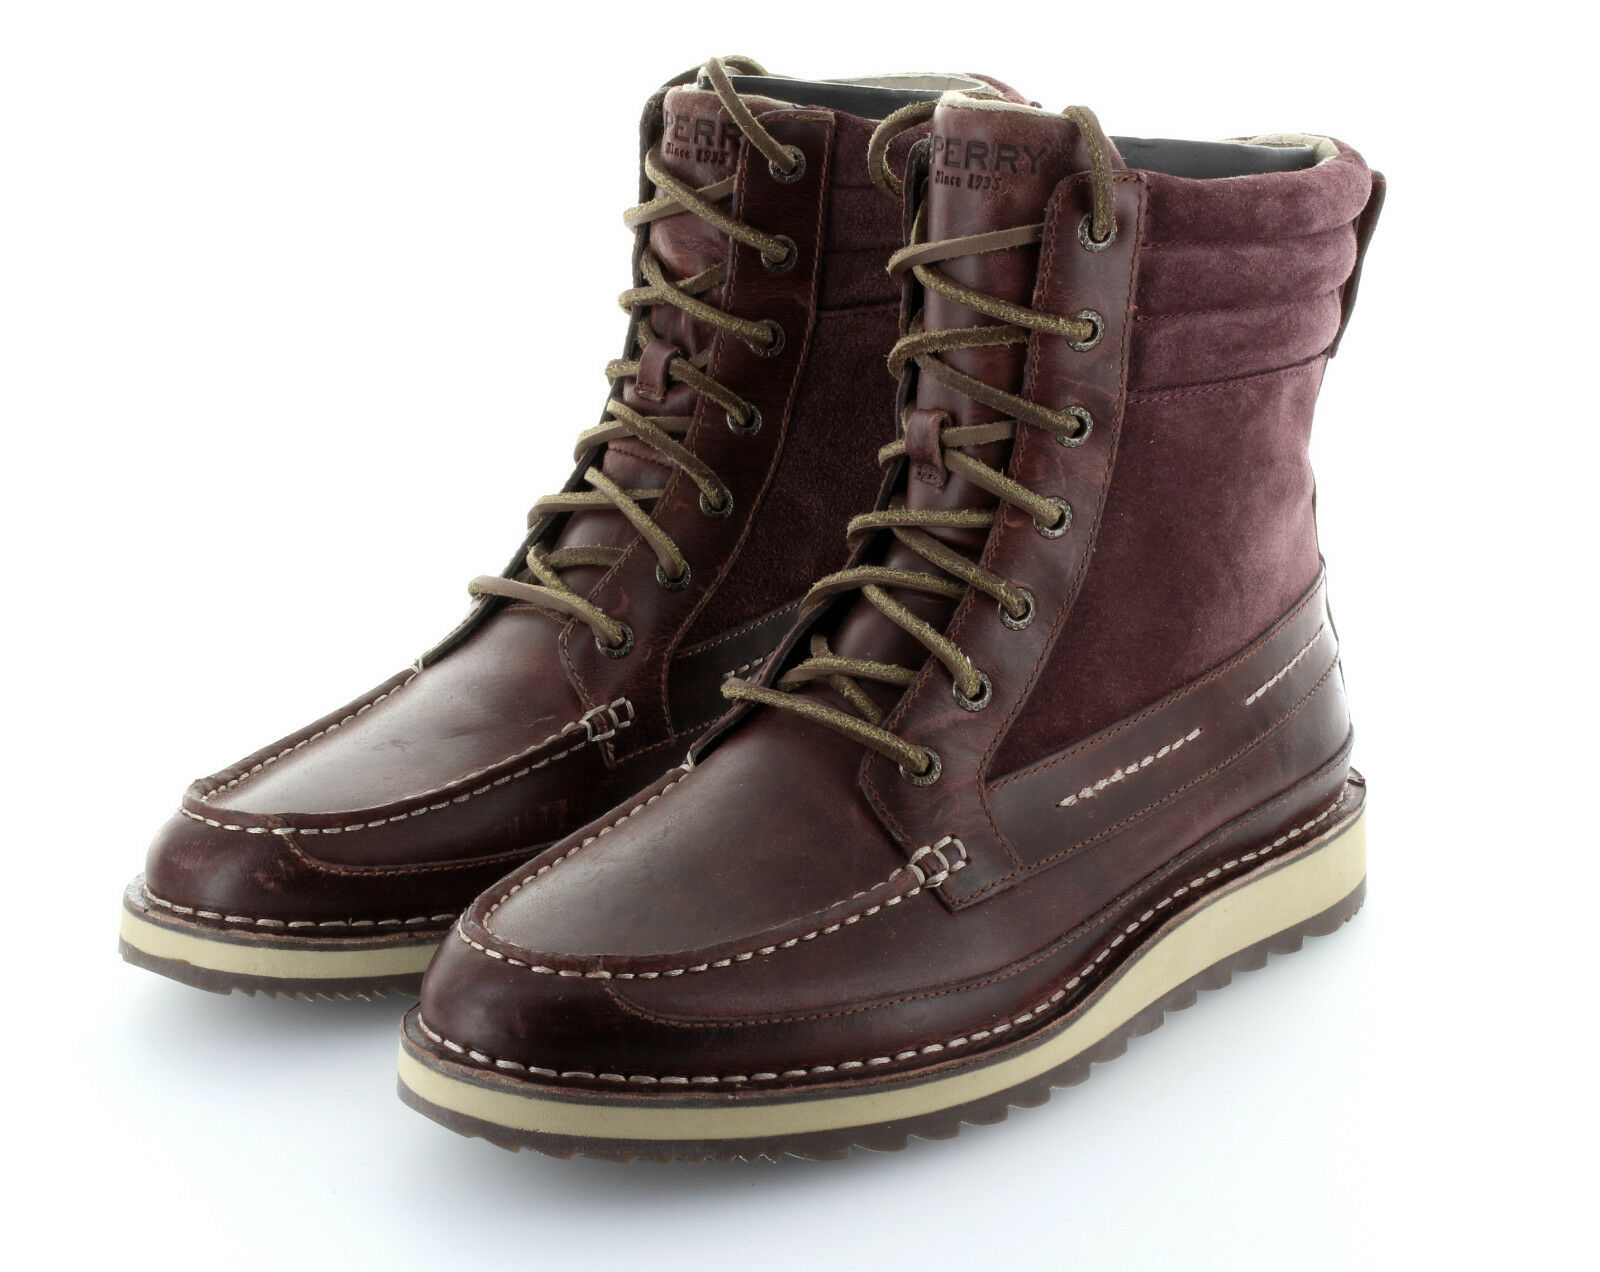 Sperry Top Sider Dockyard Boot Oxblood Stiefel Leder Schuhe Gr. 42 / US 9